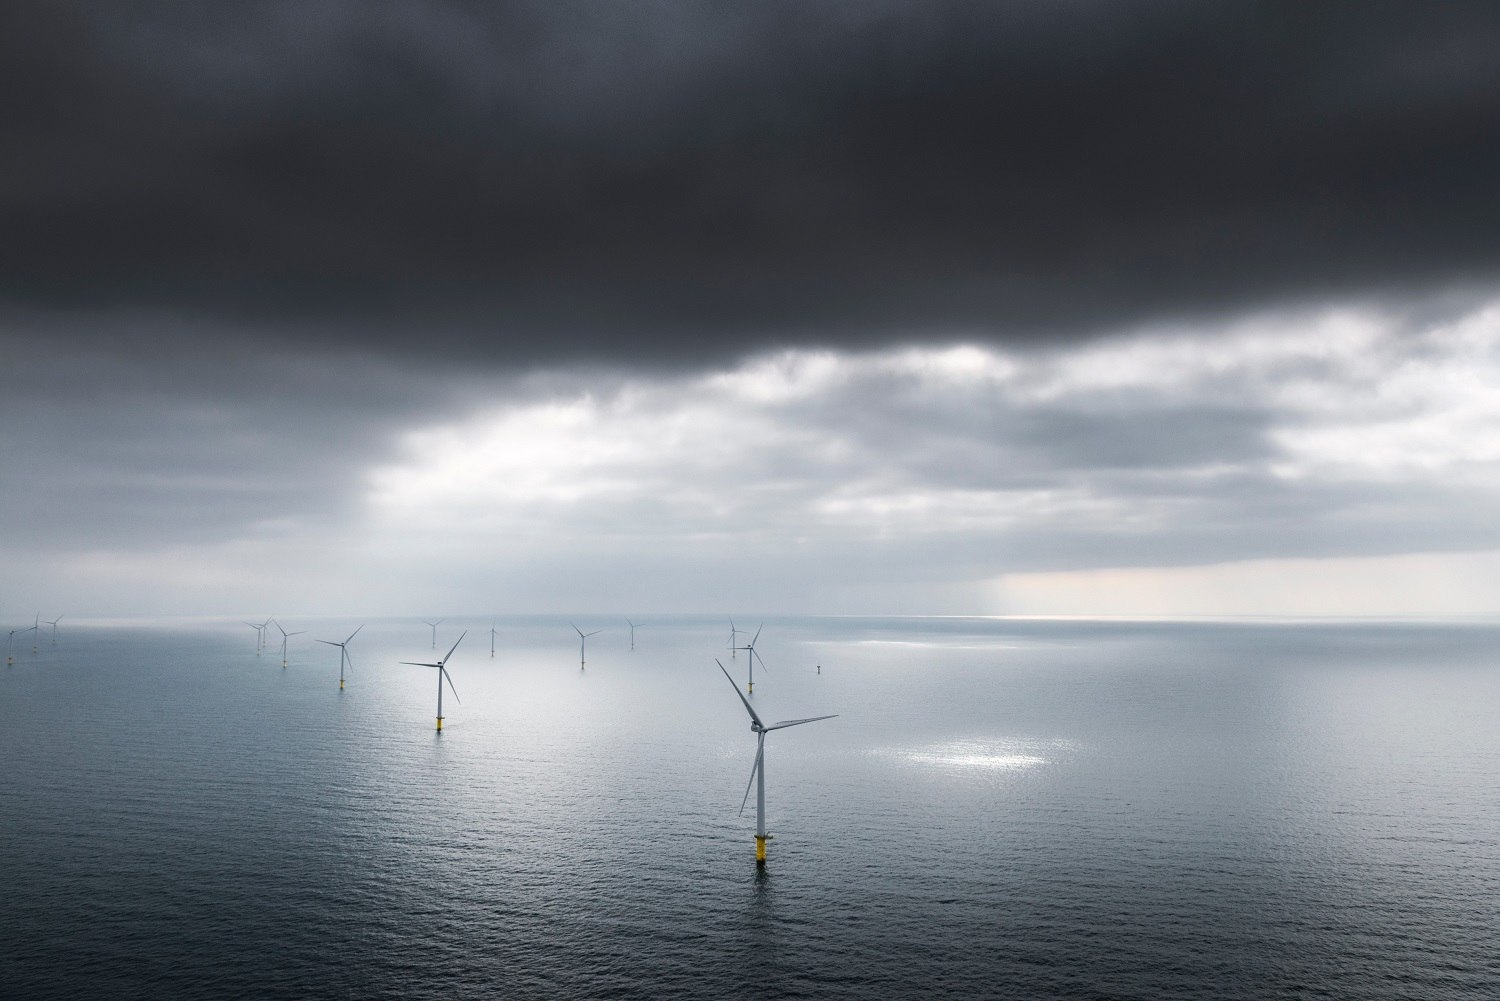 Offshore wind turbines and storm clouds